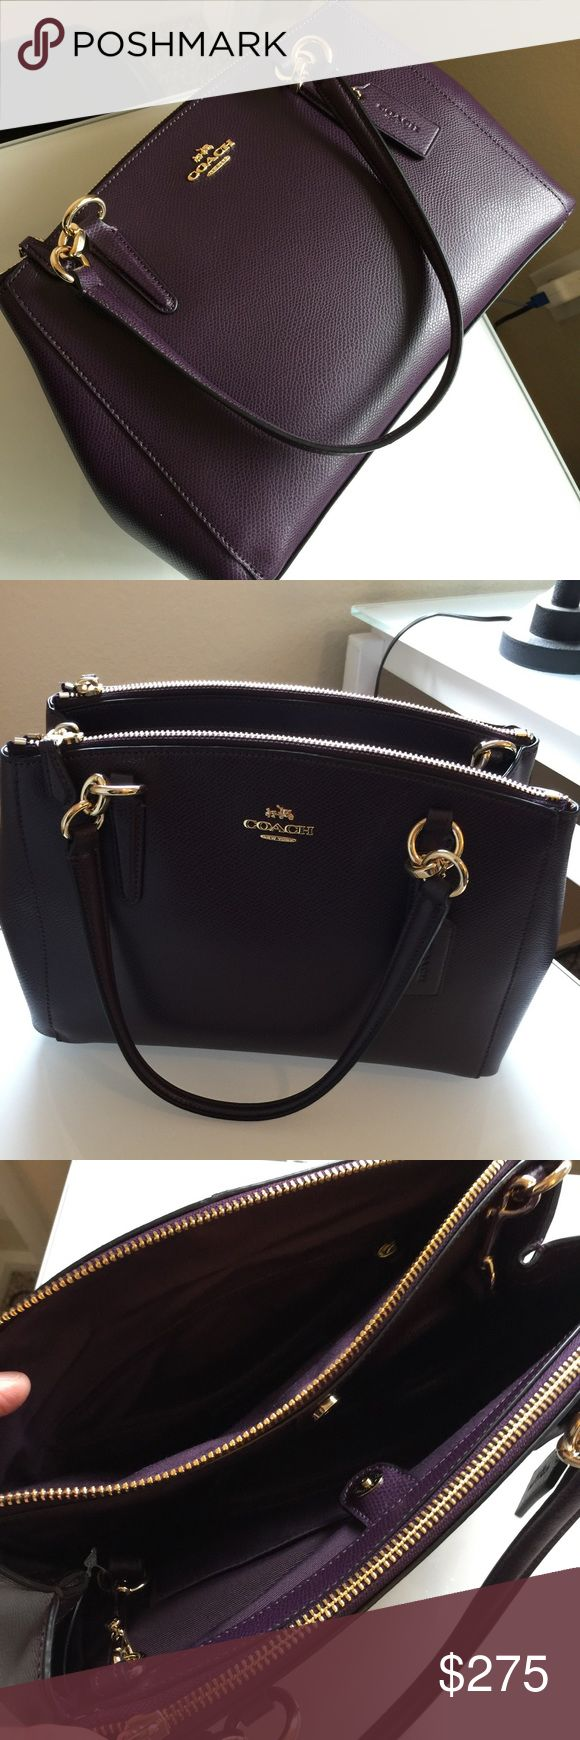 "Coach NWT Christie Carryall Purple Coach Christie carryall Satchel Purple  $395' f36637 IMAuberine Leather gold hardware  Shoulder strap 22"" 12 x 9 x 3.5 Love Love this bag 1st picture actual color Coach Bags Satchels"